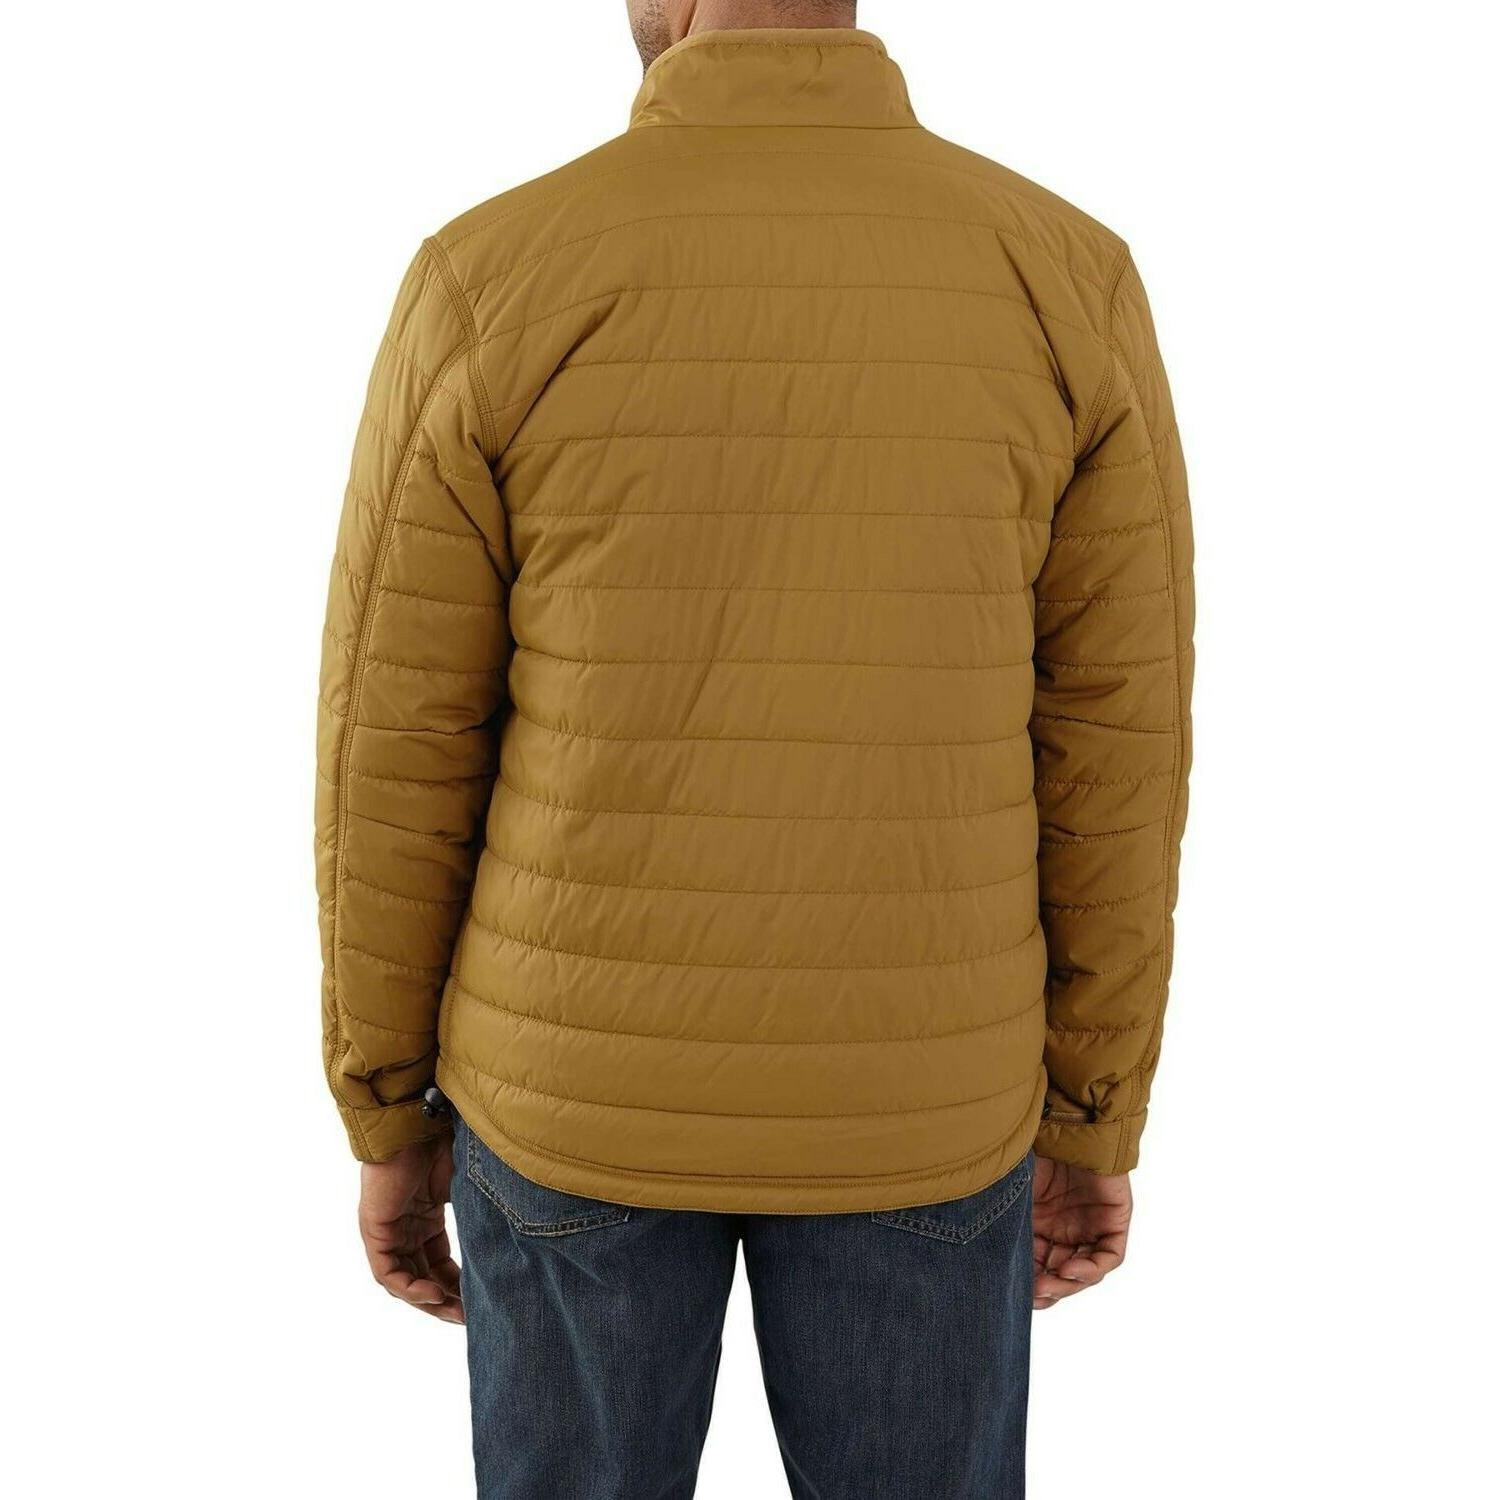 Carhartt Brown, Defender, Insulated